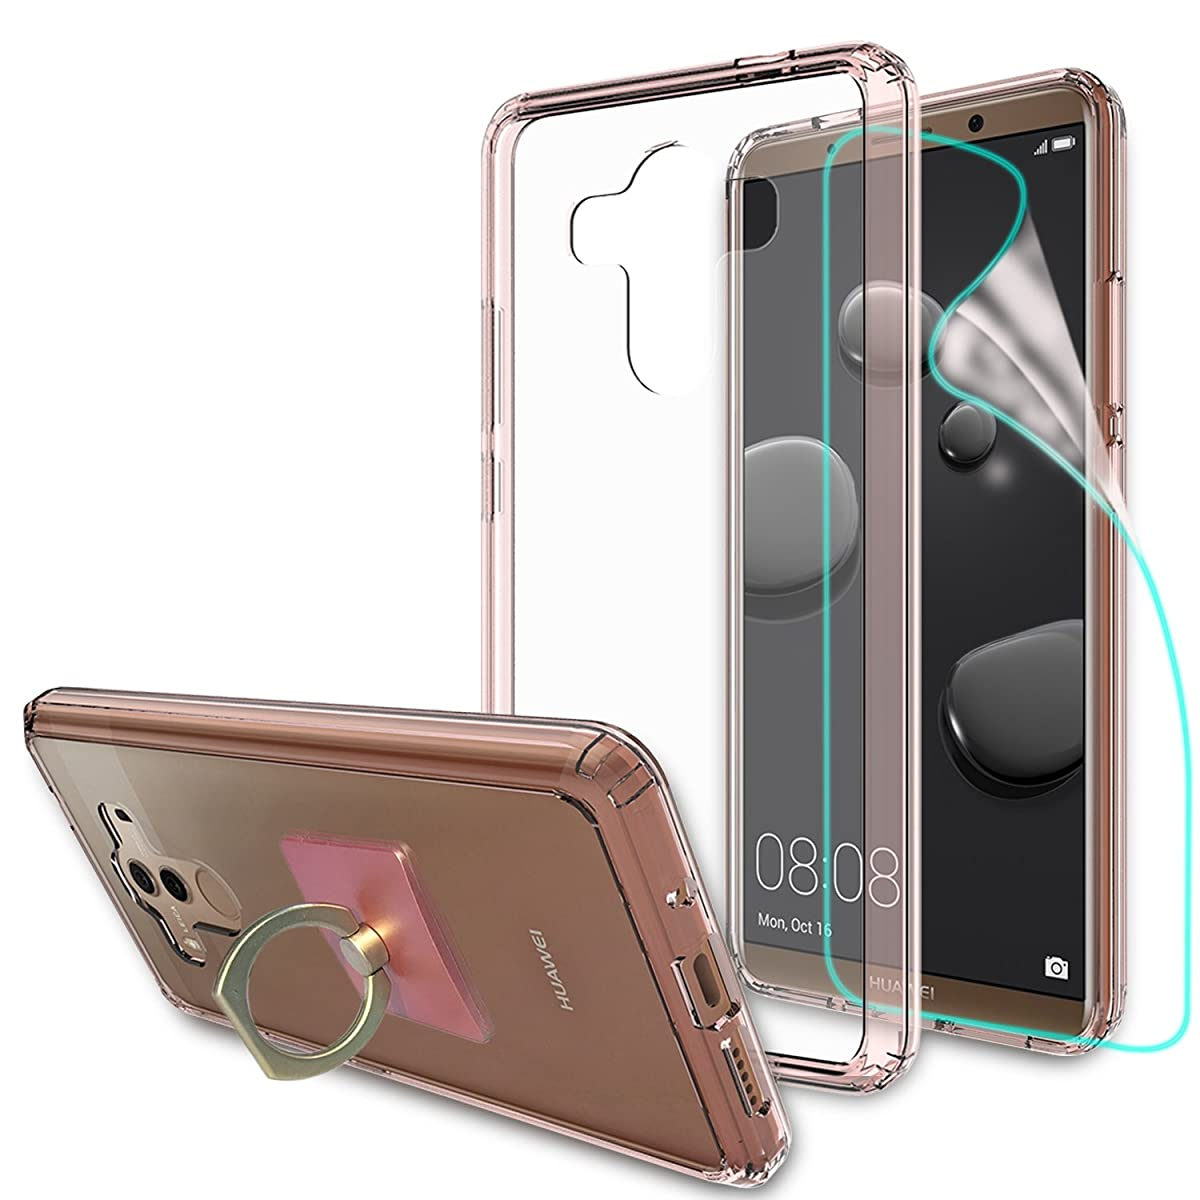 Huawei Mate 10 Pro Clear Case With HD Screen Protector + Phone Stand,Ymhxcy [Anti-Scratch] [Shock Absorption] [Air Hybrid] Ultra Slim Bumper Cover For Huawei Mate 10 Pro (6